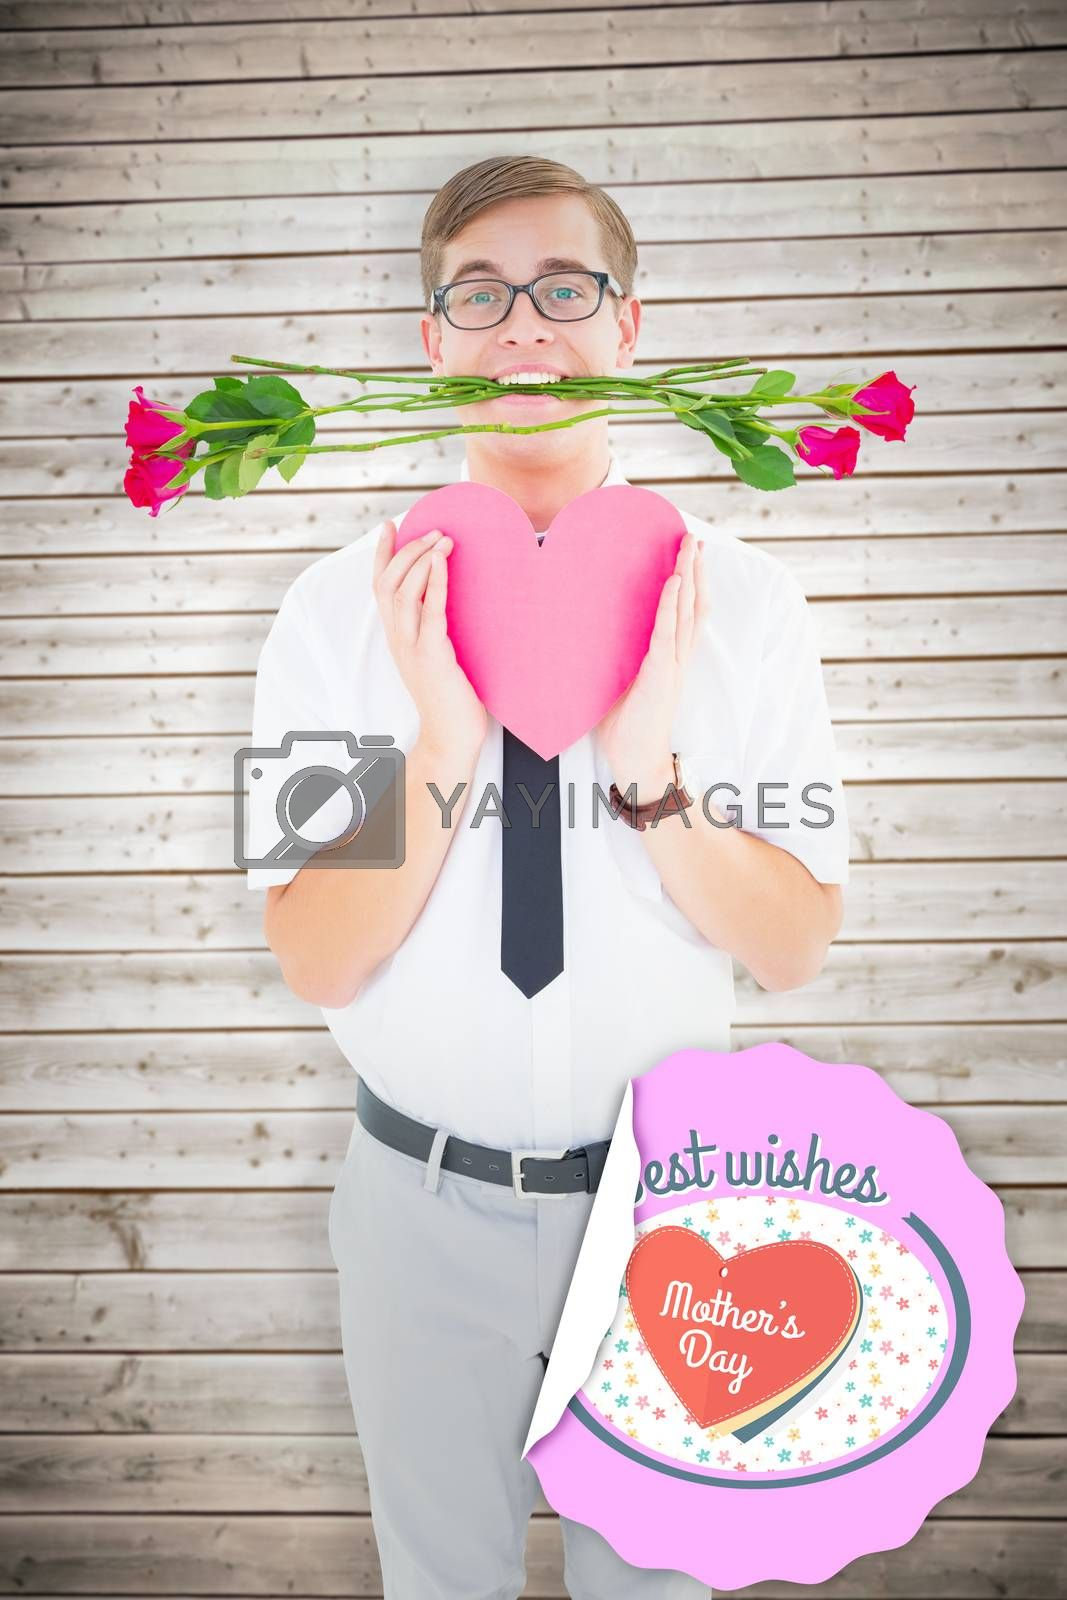 Geeky hipster holding red roses and heart card against wooden planks background